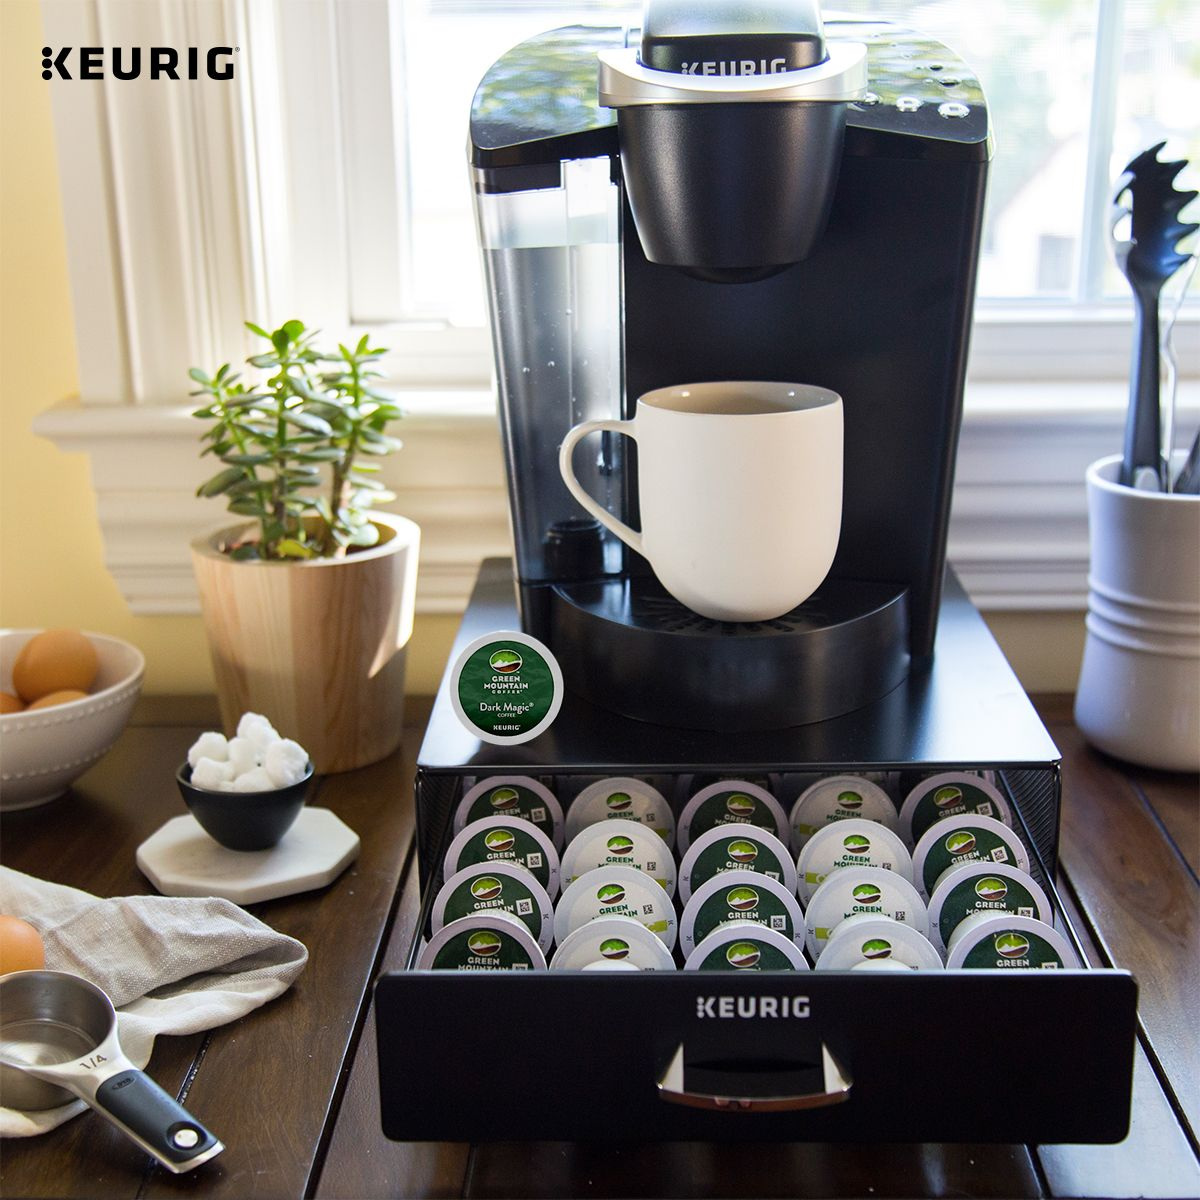 Accessorize your Keurig brewer with our KCup Pod Storage